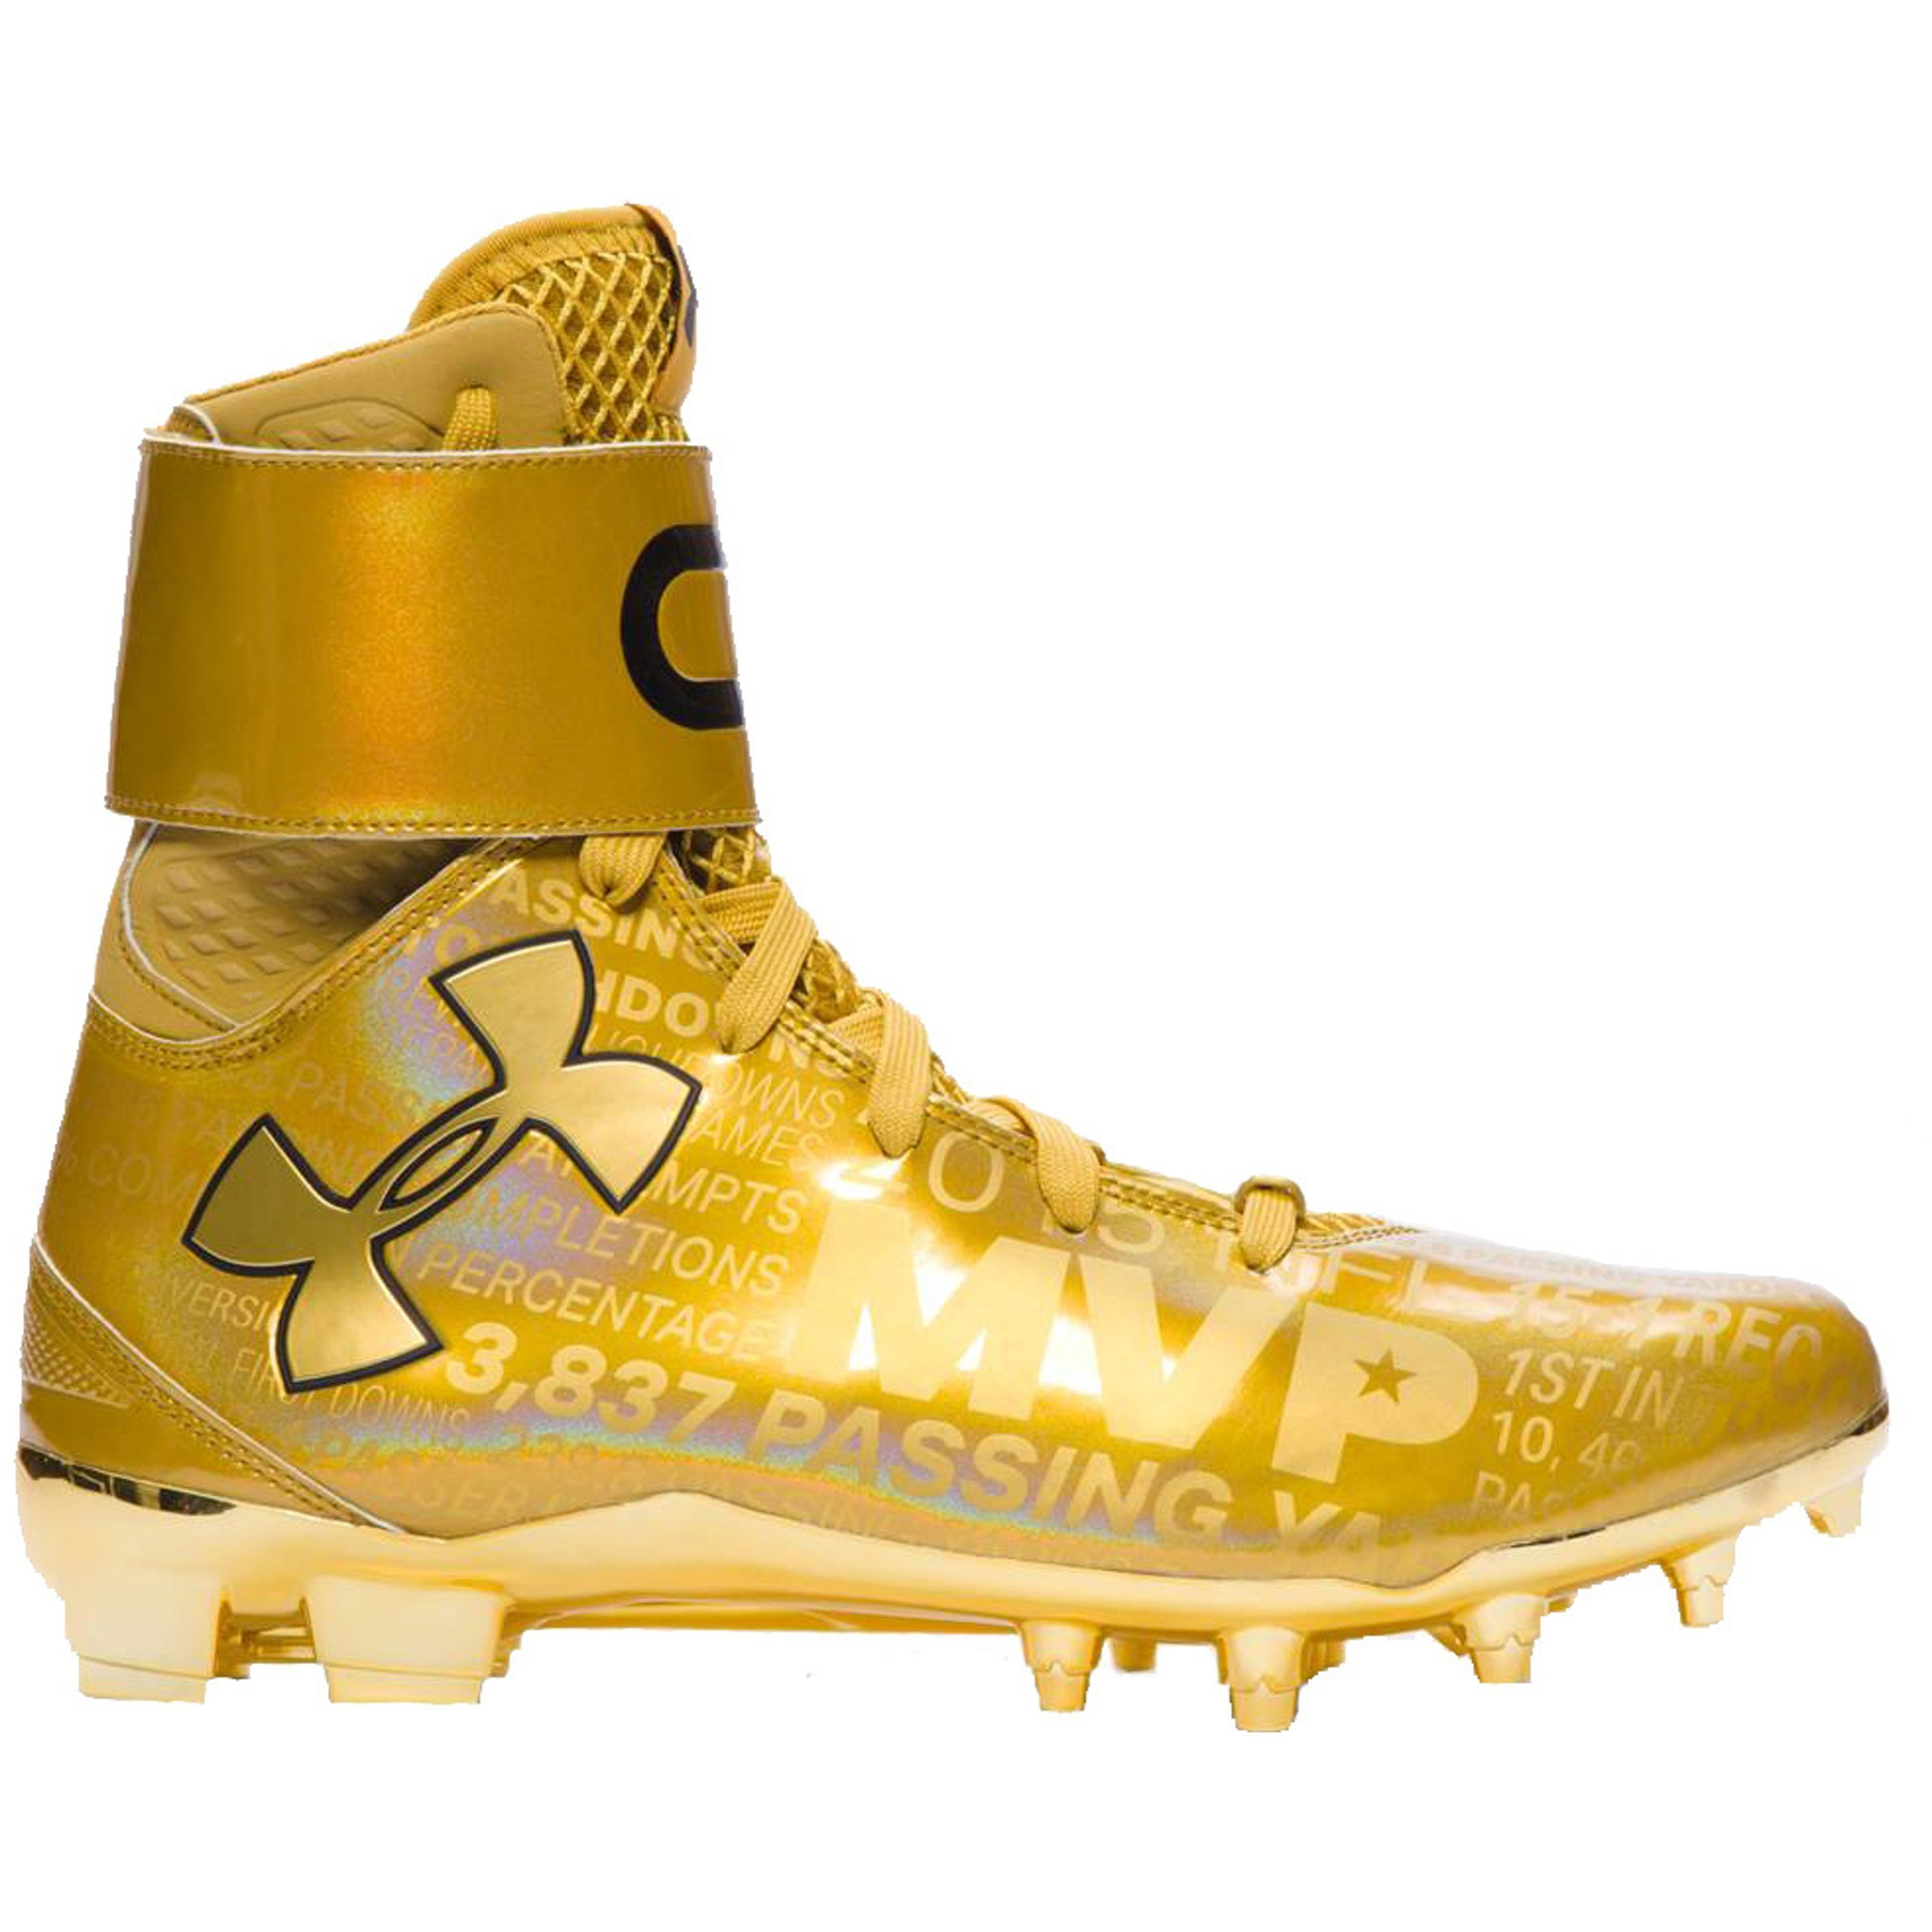 Under Armour UA C1N Cleats MVP (Signed) (1297139-795S)